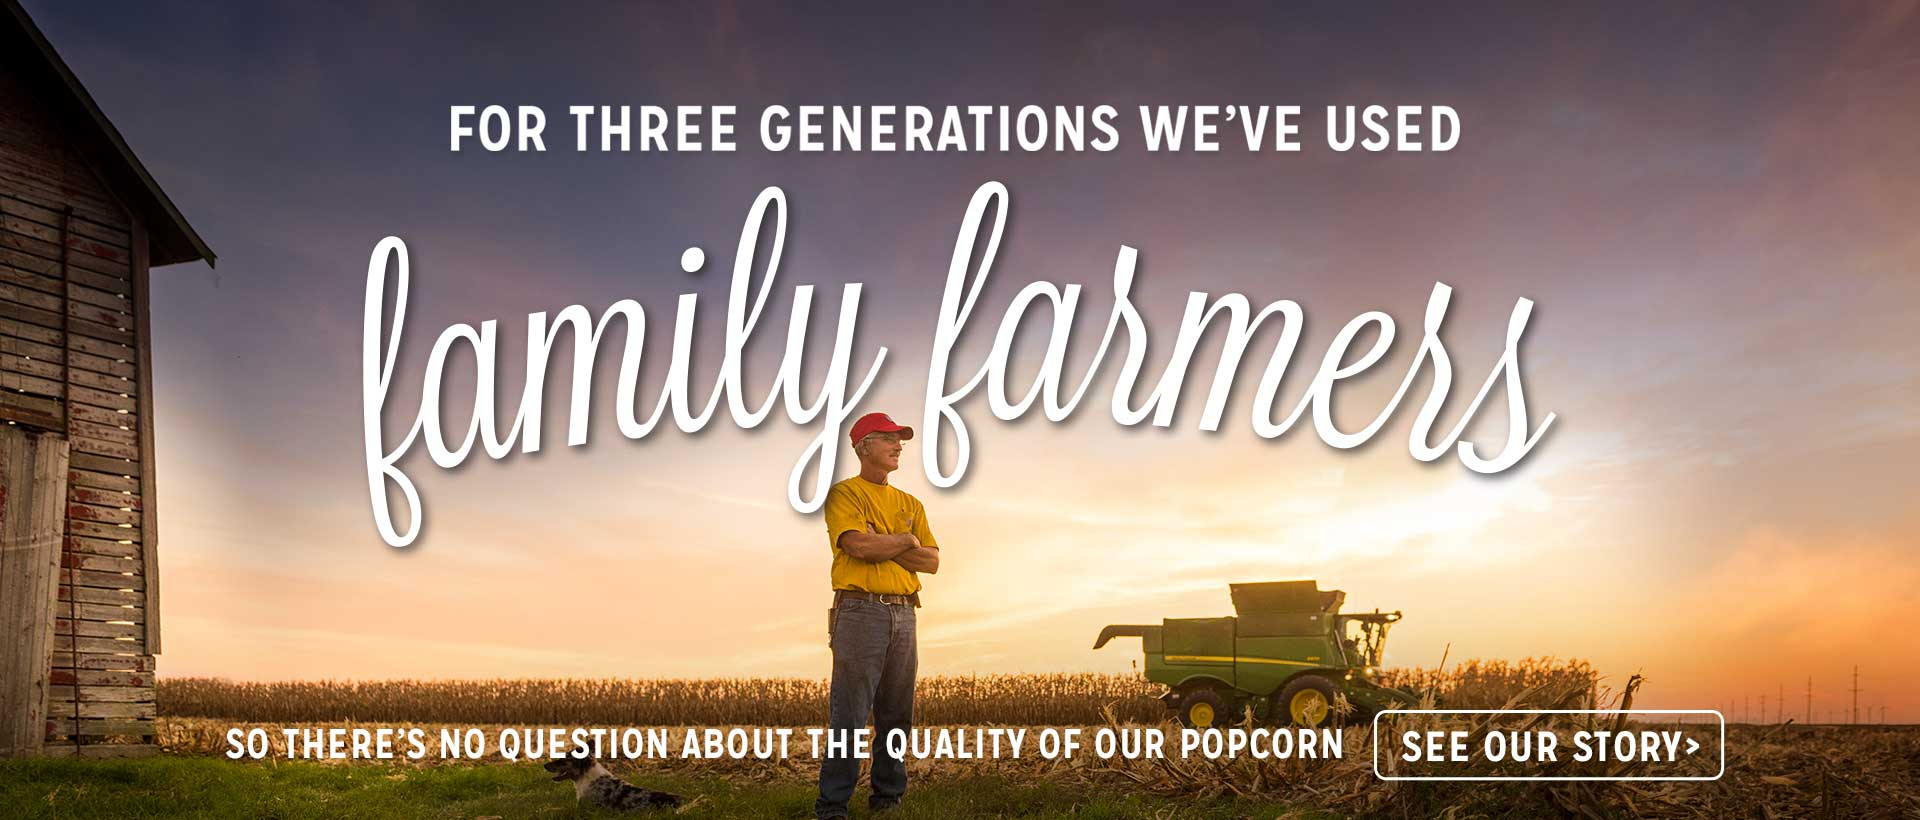 For Three Generations We've Used Family Farmers So There's No Question About the Quality of Our Popcorn